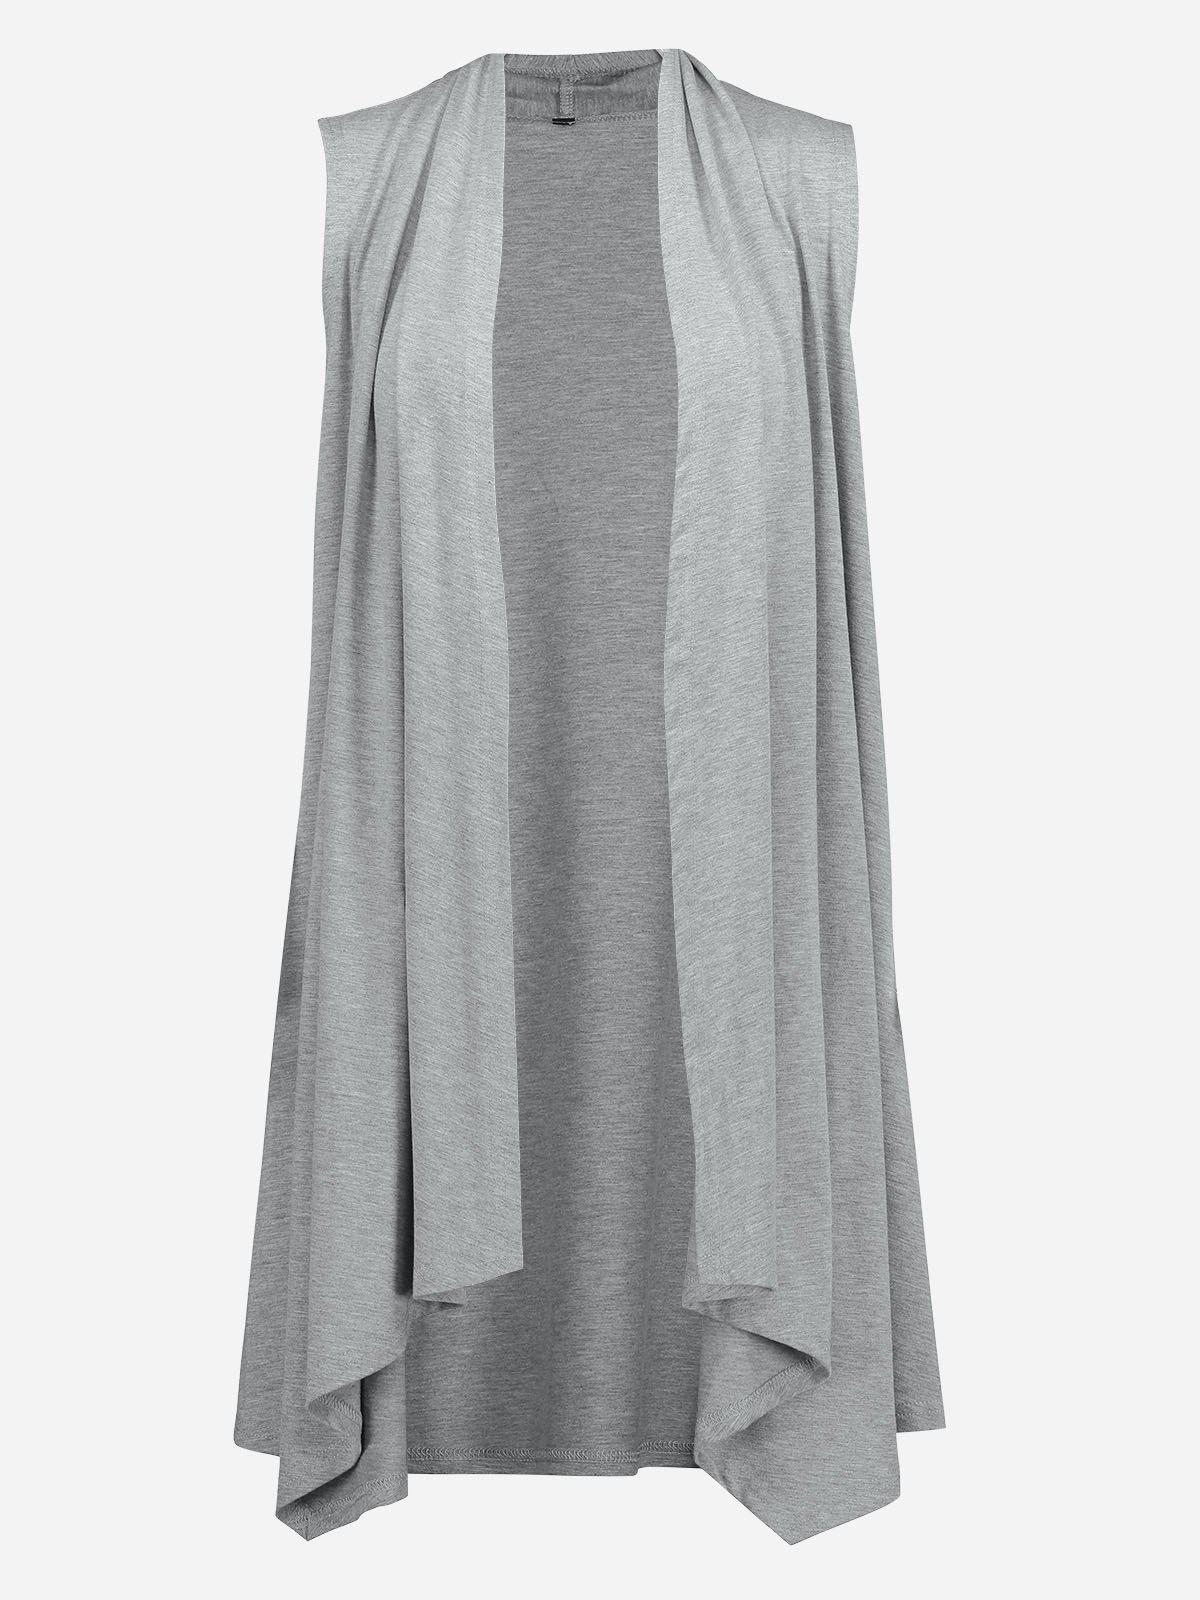 ZAN.STYLE Sleeveless Open Front Vest - LIGHT GRAY XL